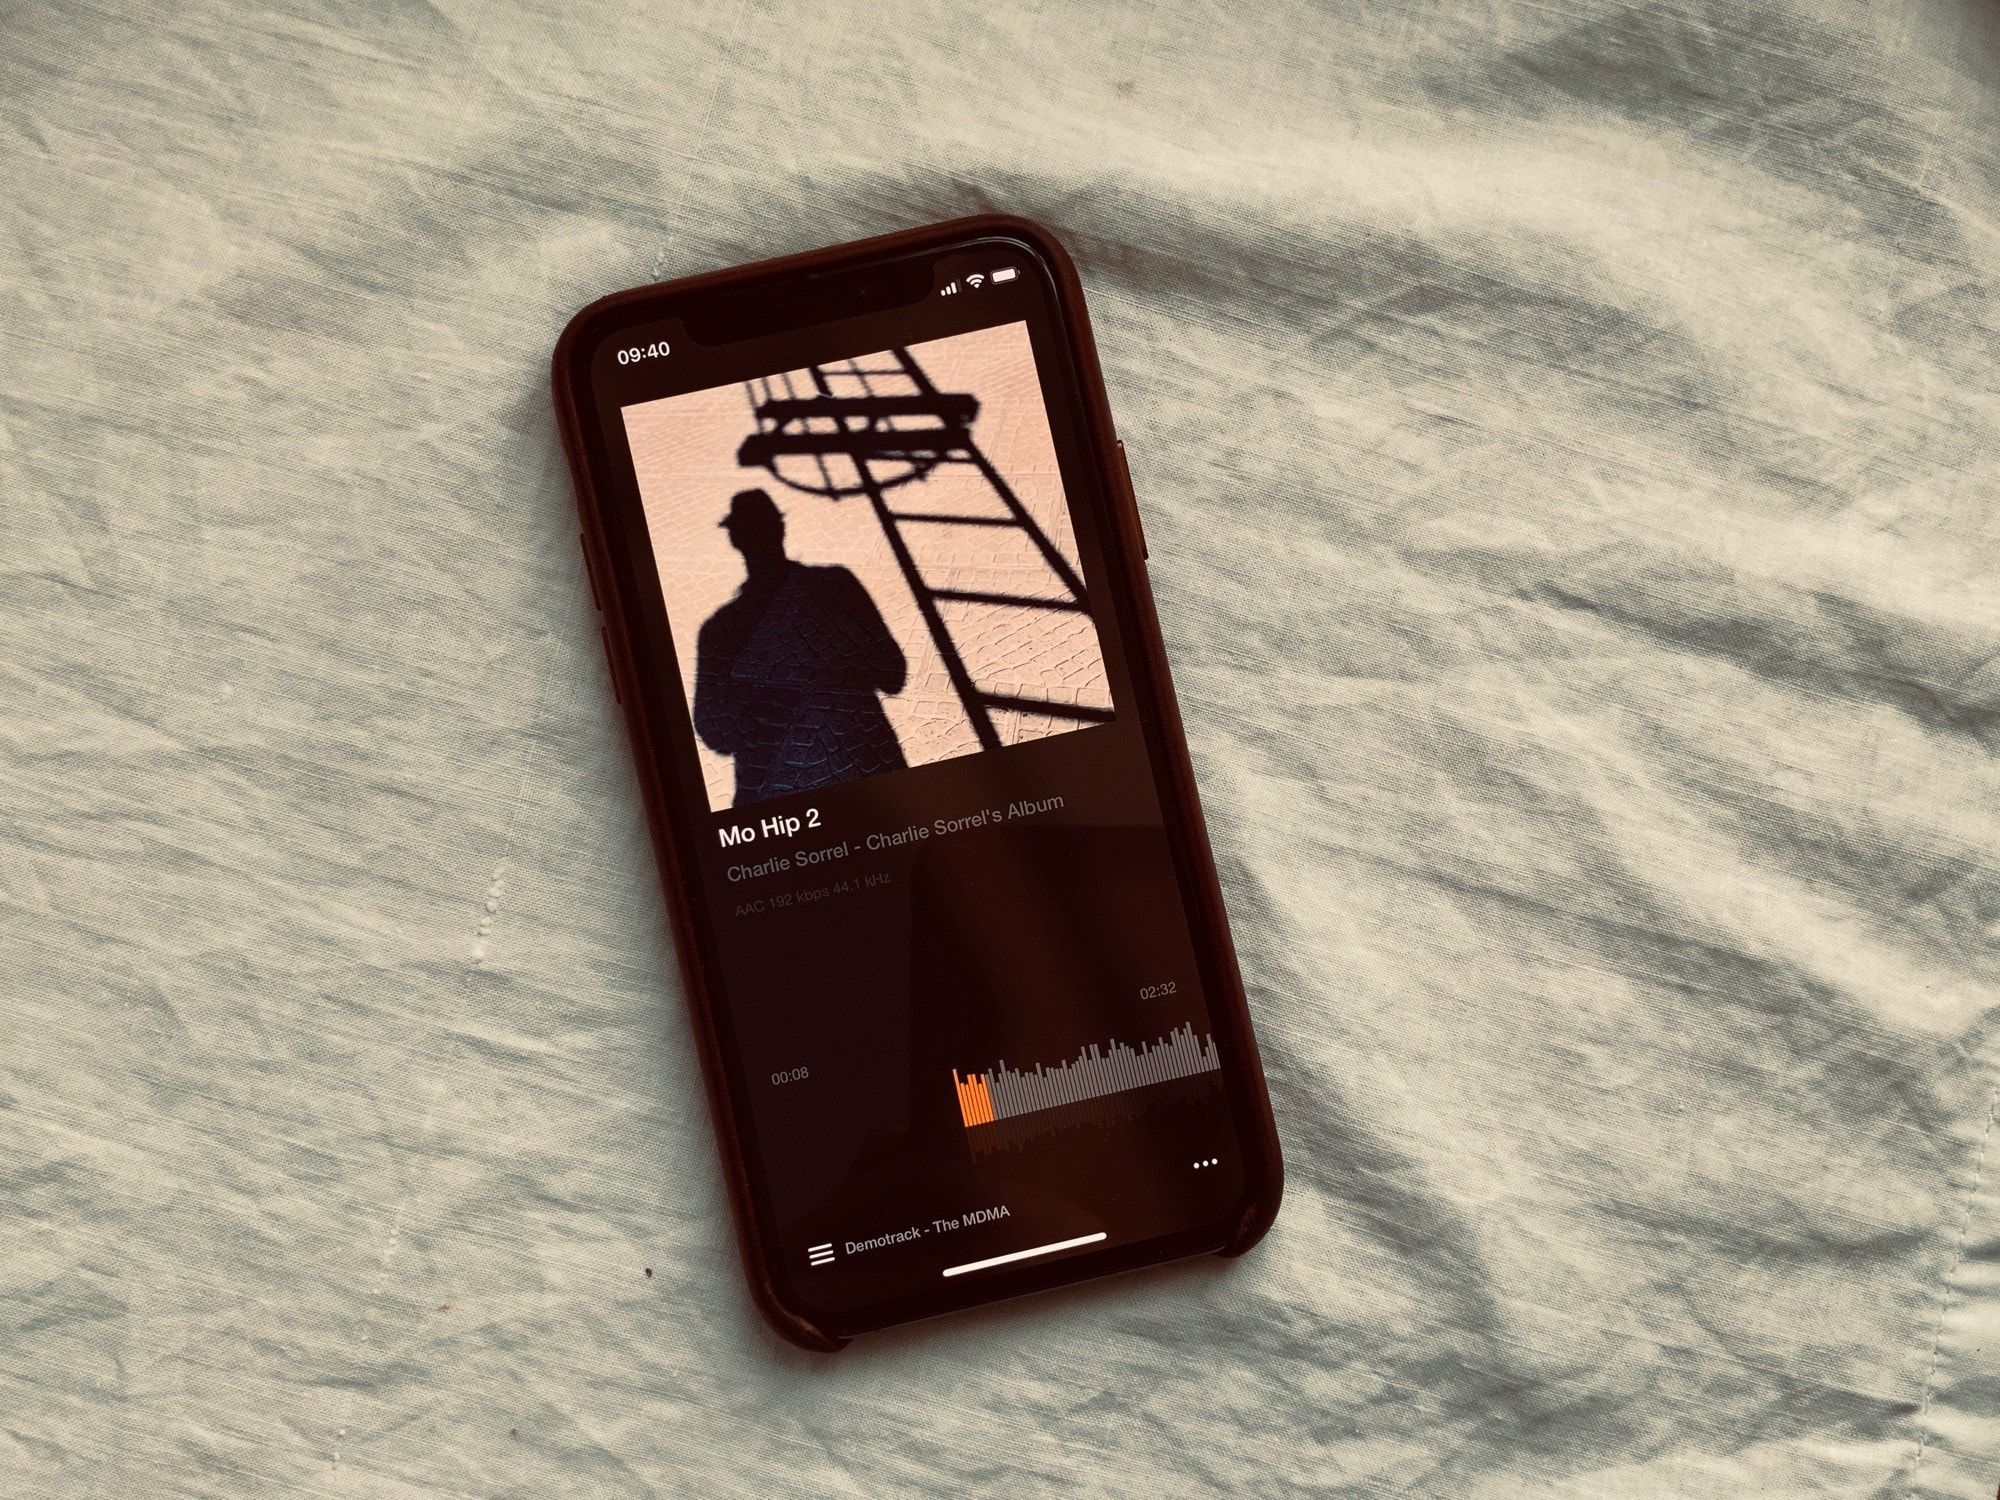 How To Add Your Own Music To Your Iphone Without Itunes Technology Music App Music Vox Music